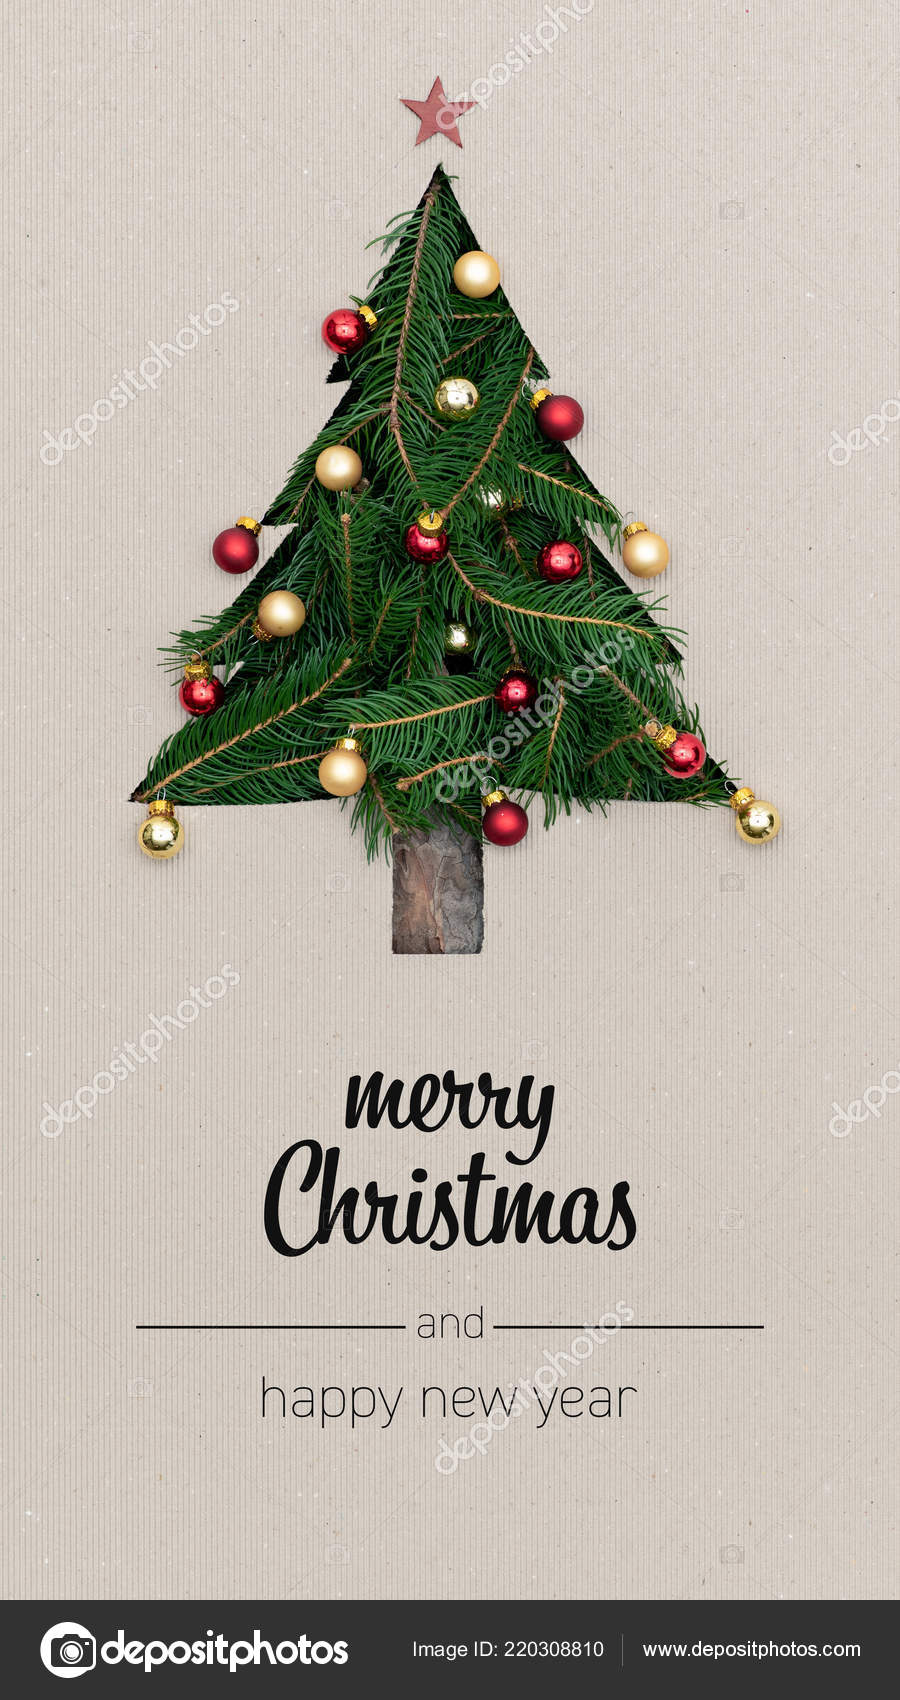 merry christmas and happy new year greetings in vertical top view cardboard with natural eco decorated